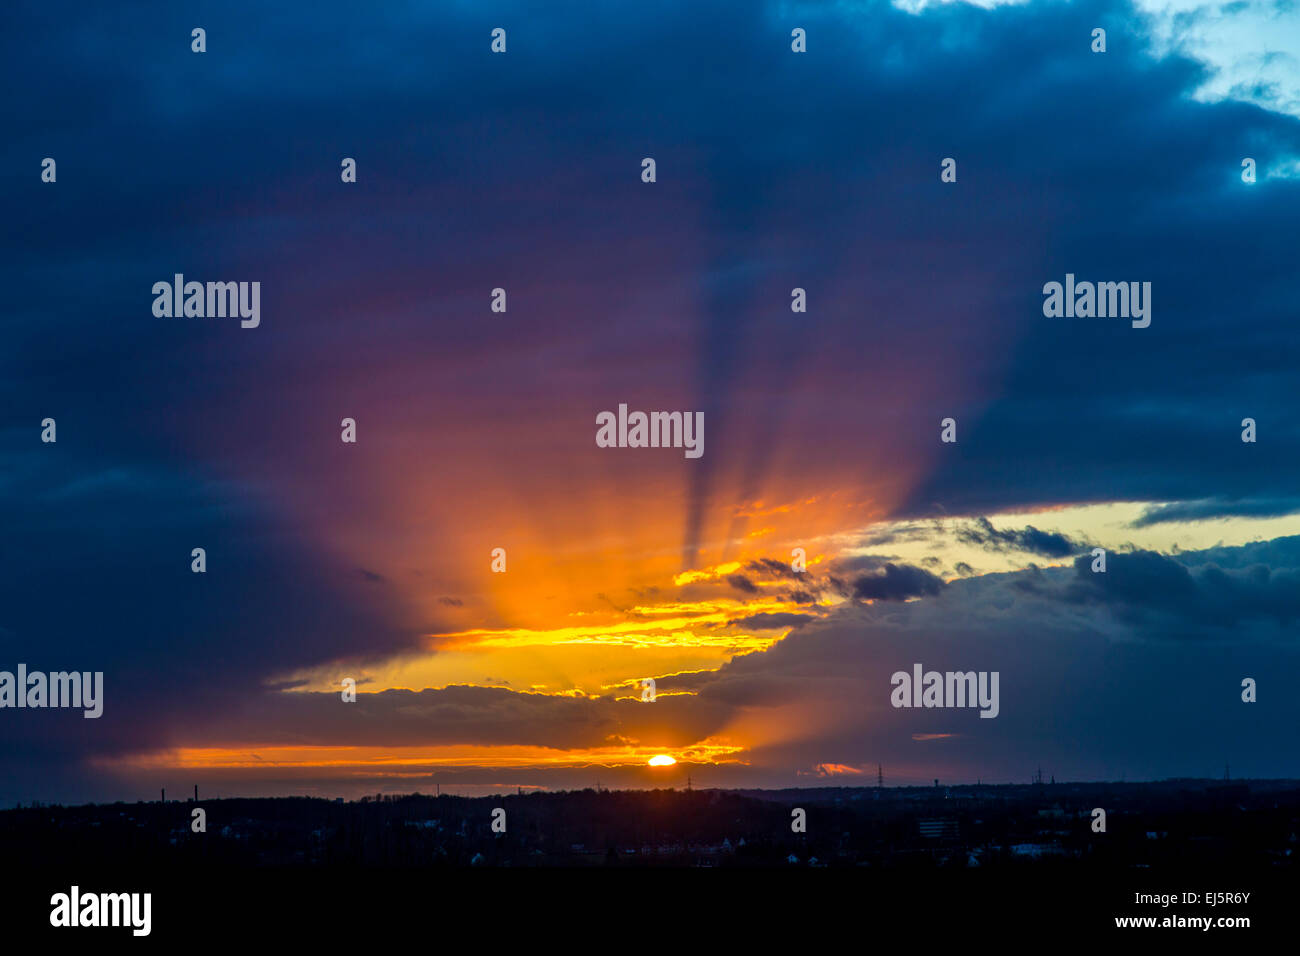 Dramatic sunset, dark clouds - Stock Image